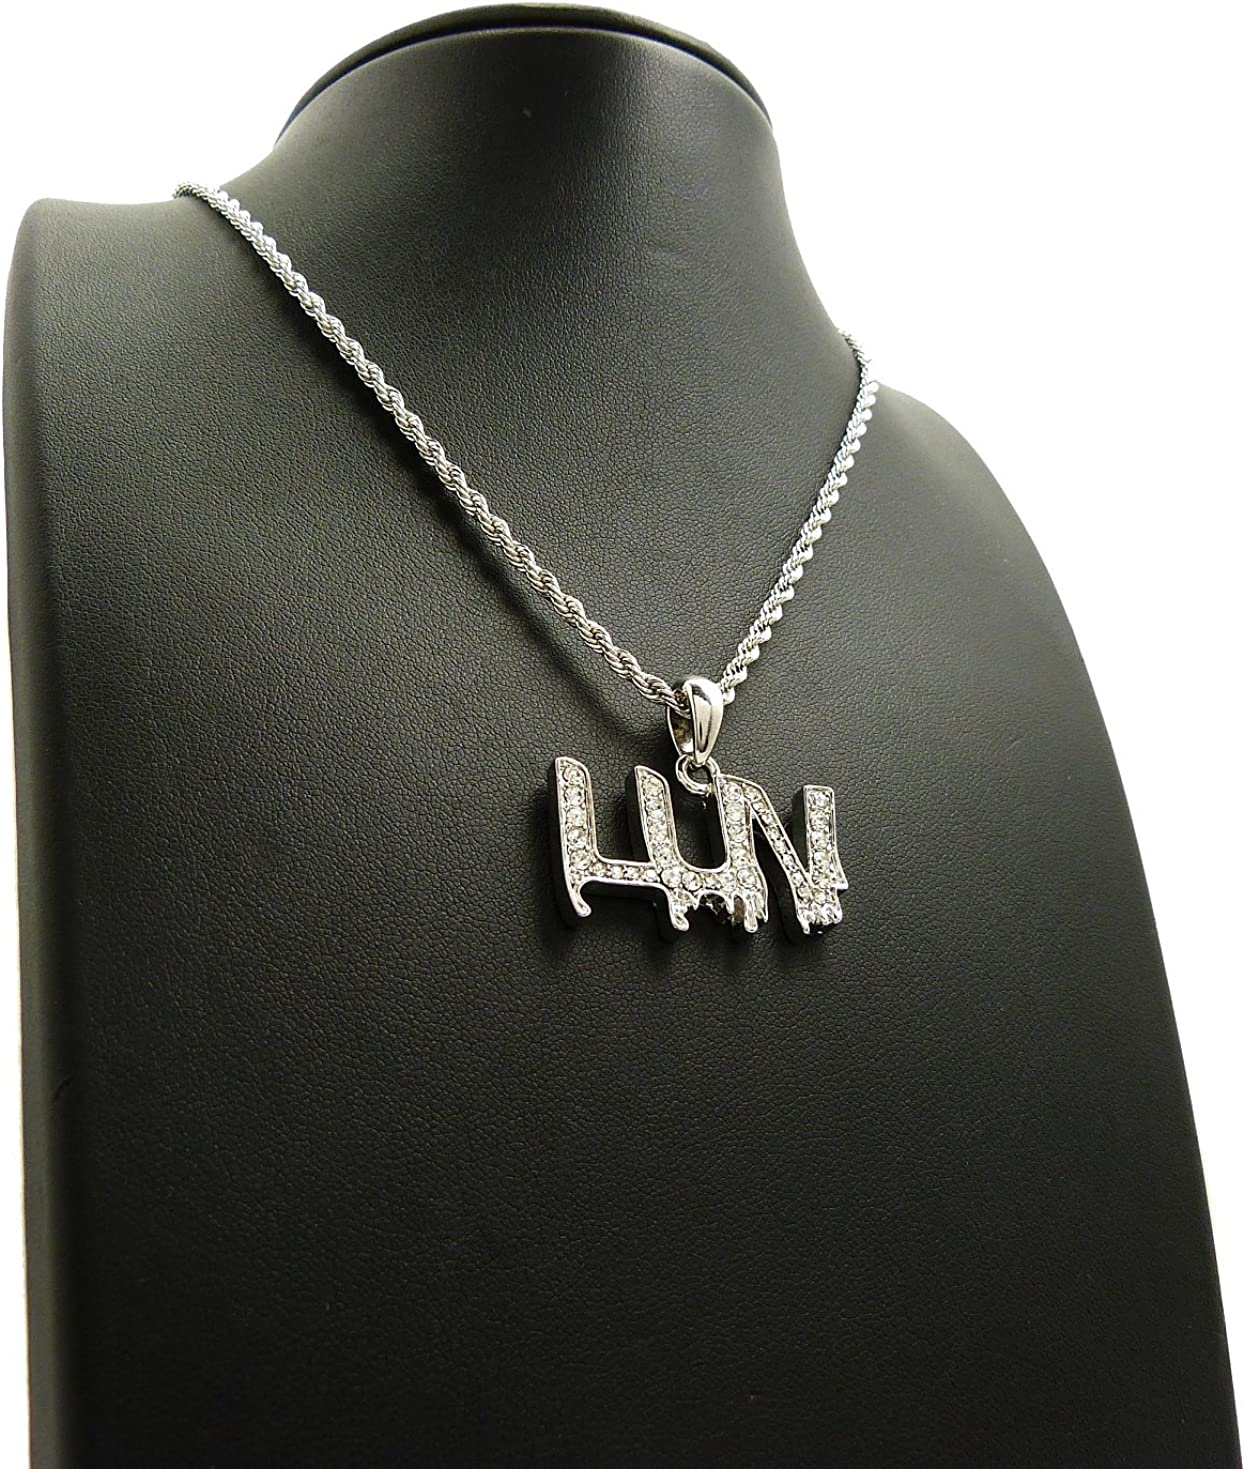 NYFASHION101 Stone Stud LUV Drip Effect Micro Pendant with 2mm 18 Rope Chain Necklace